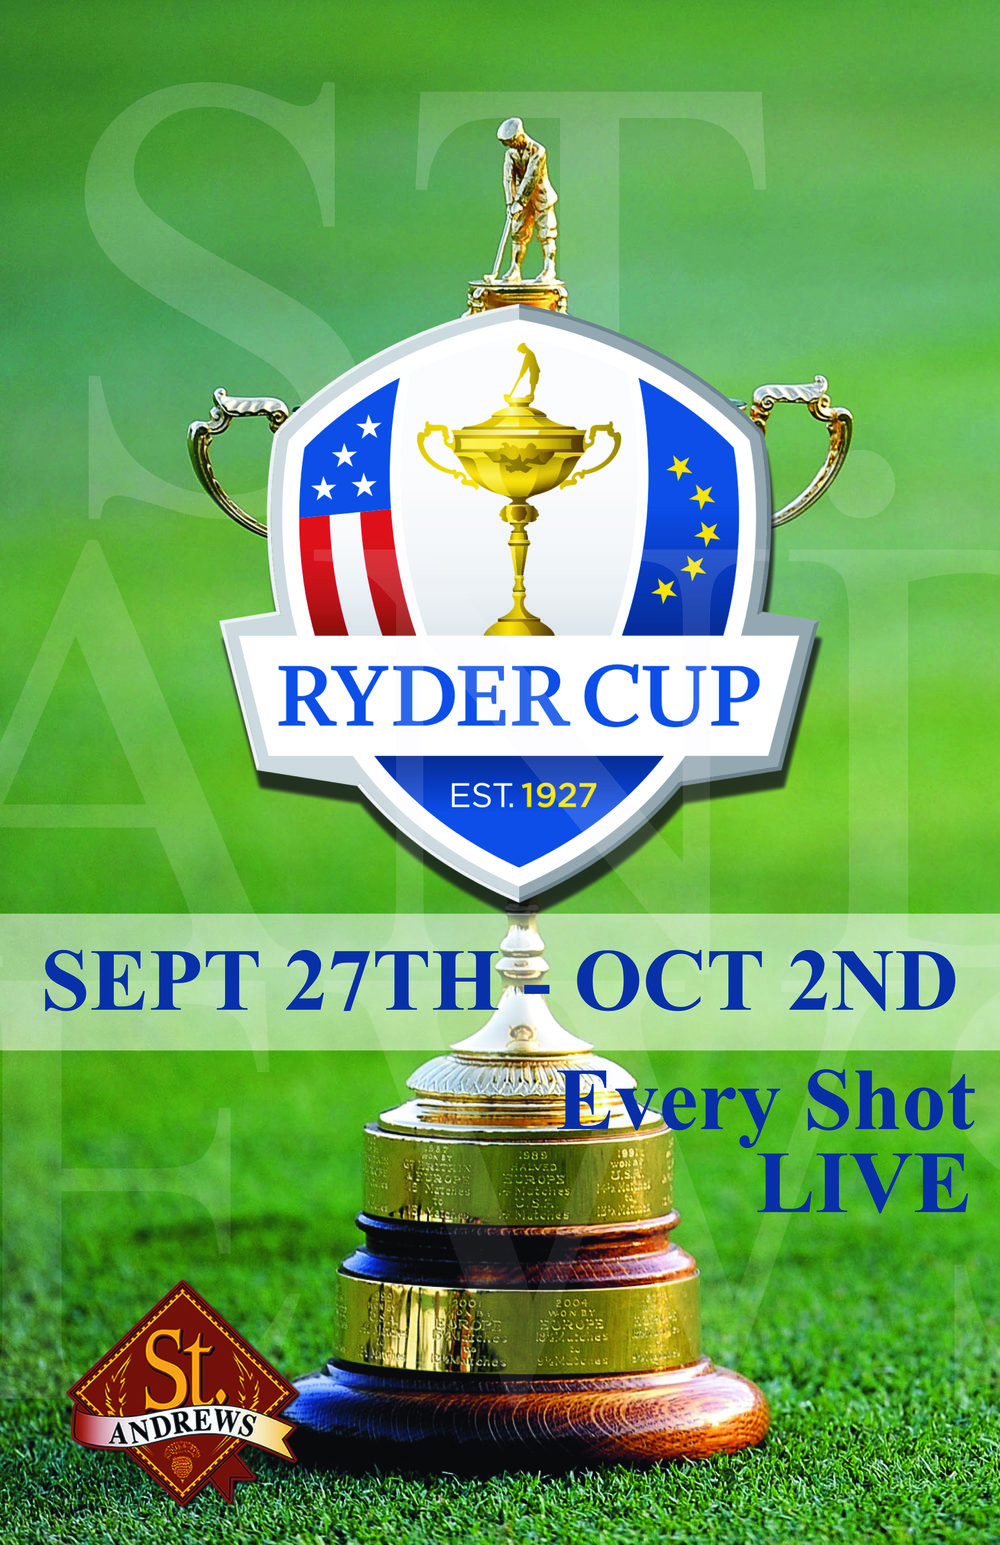 SHOWING ALL THE ACTION! DON'T MISS A SHOT AT ST. ANDREWS!